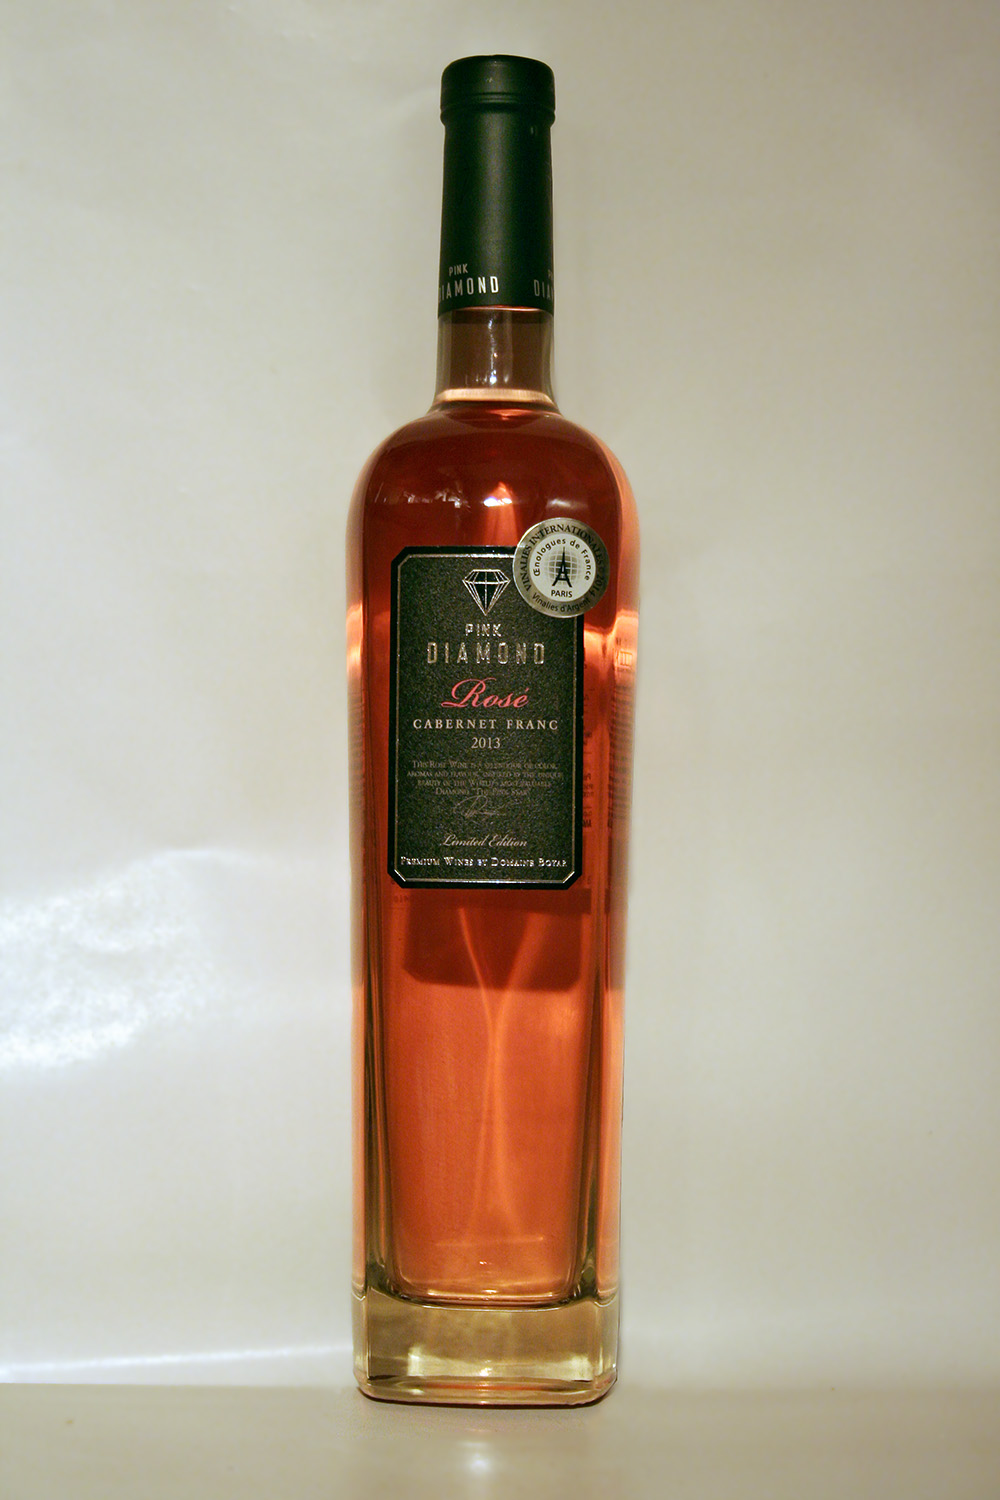 Pink diamond rosé cabernet franc limited edition 2013